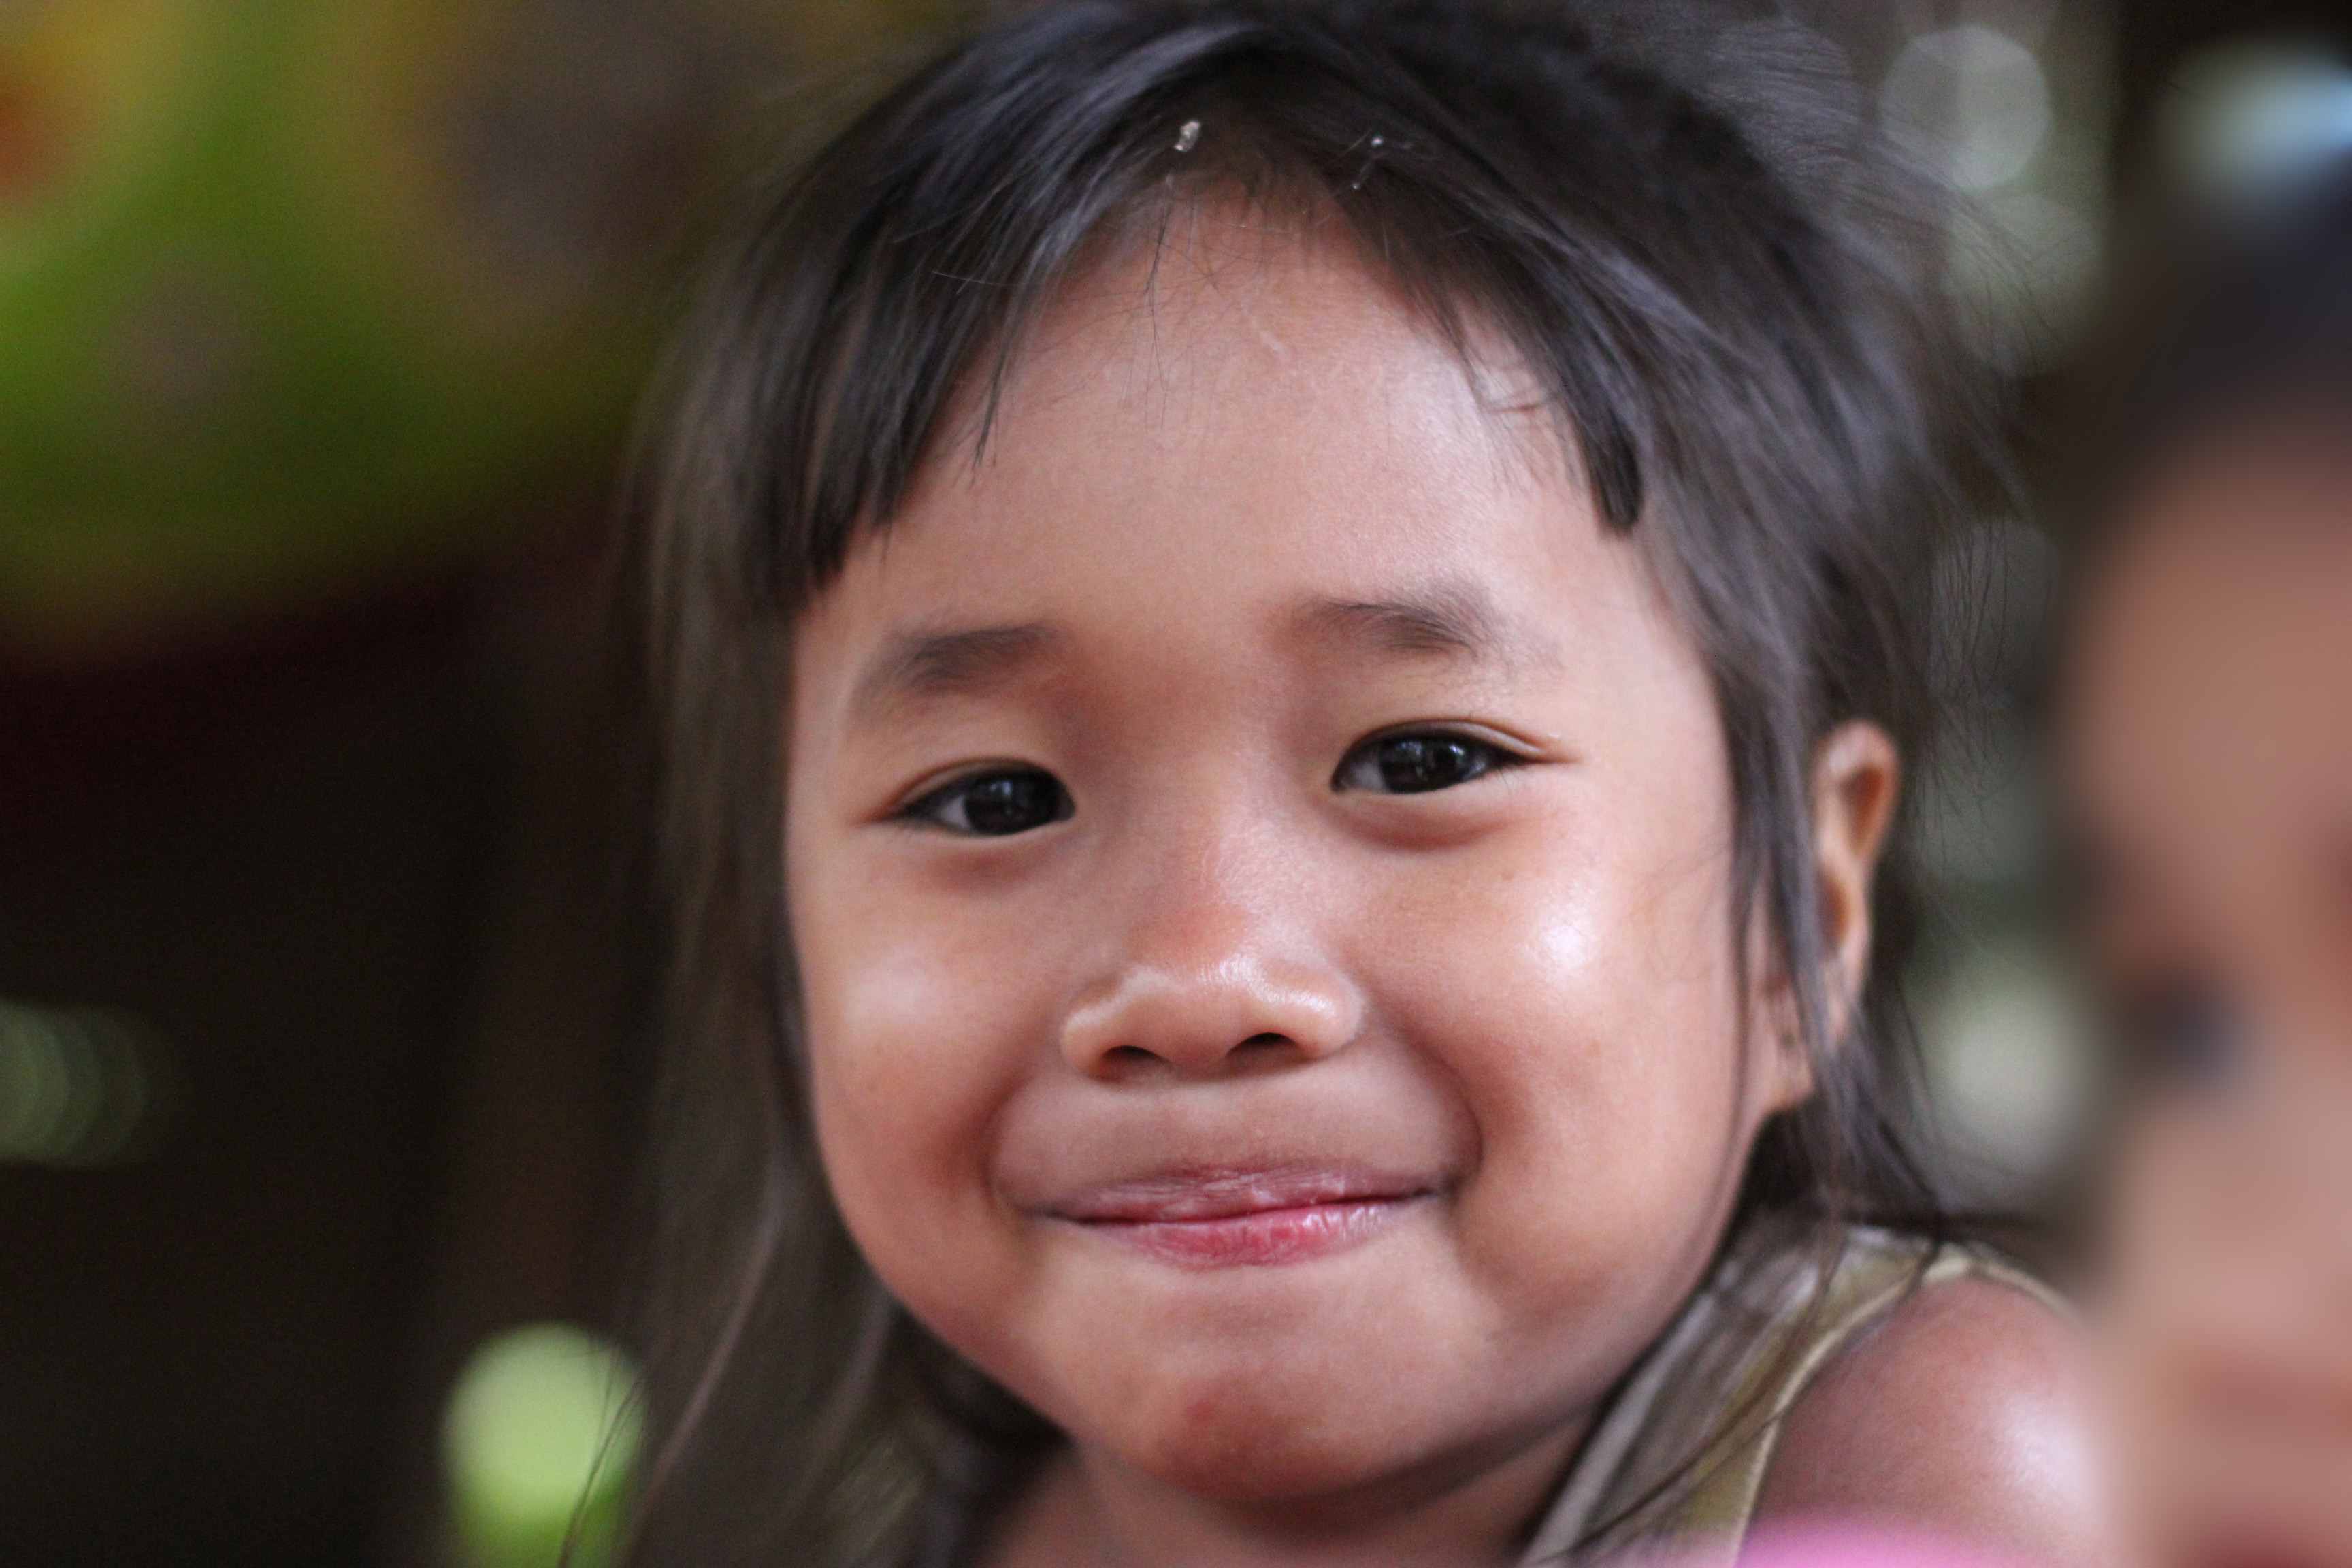 File:Little girl smiling from Don Det in Laos.jpg - Wikimedia Commons